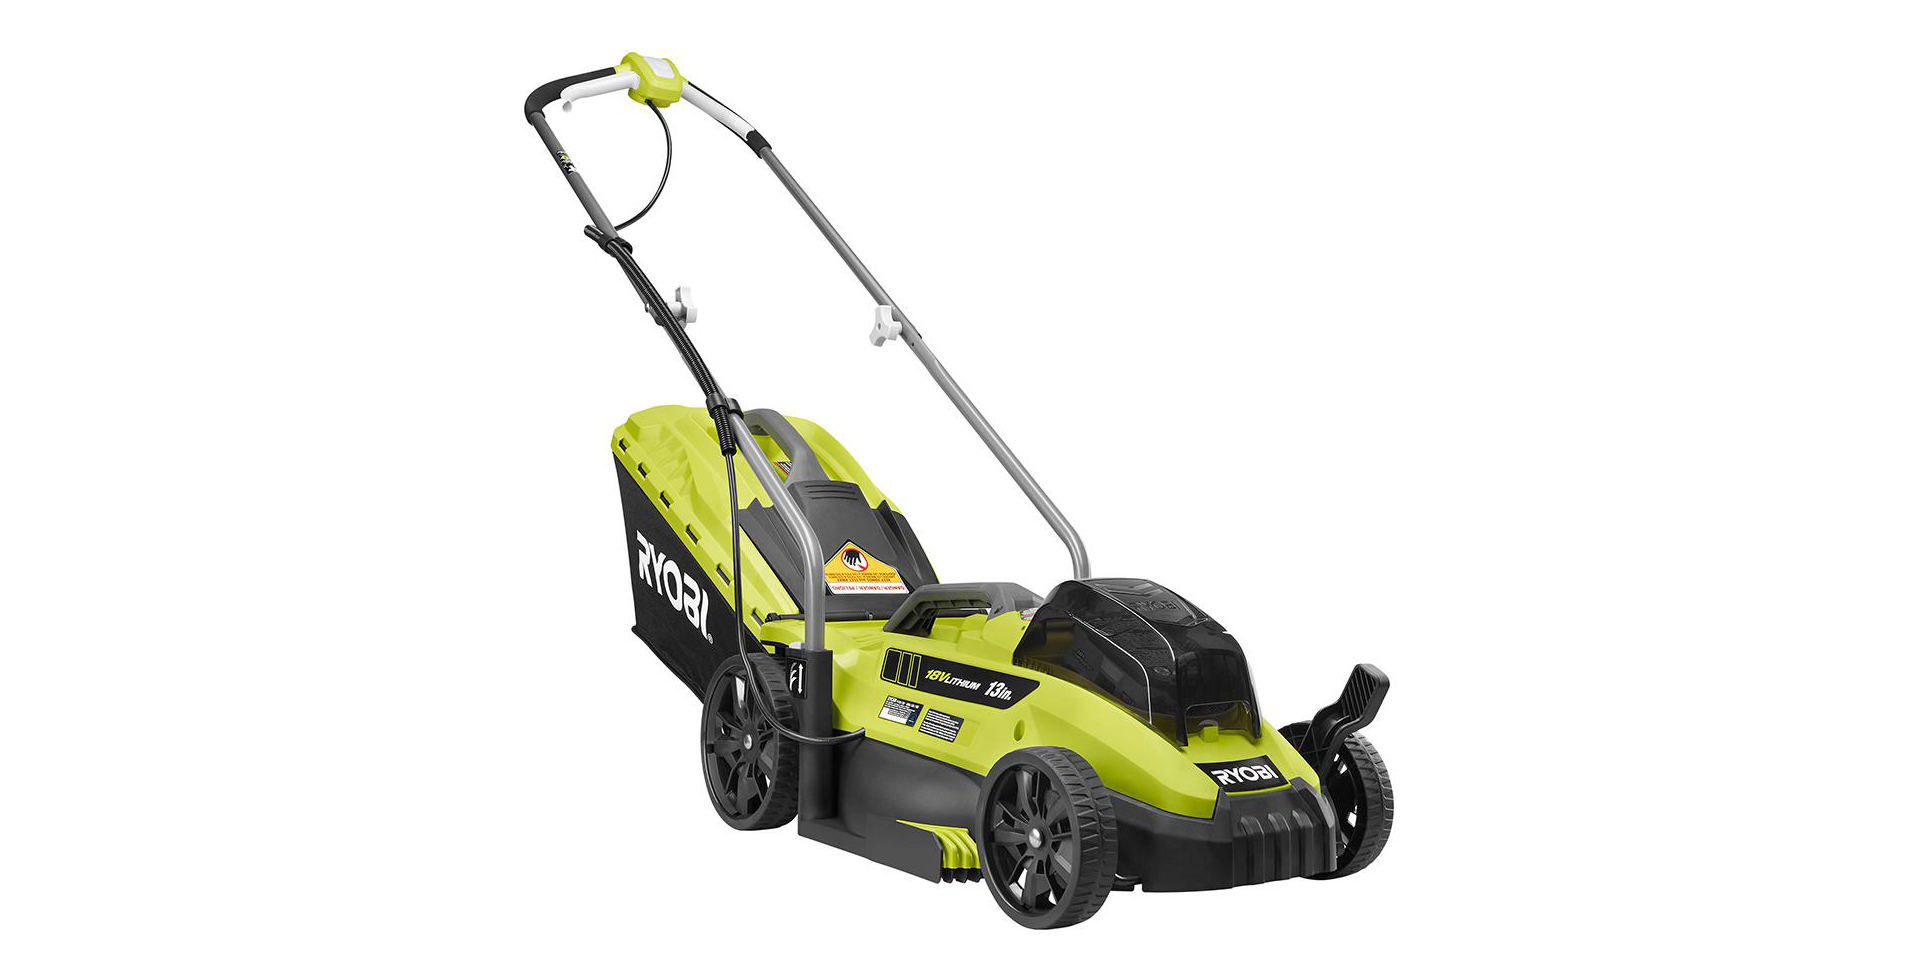 Ryobi's 13-inch electric lawn mower is on sale for $149 today, plus deals on raised garden beds and more